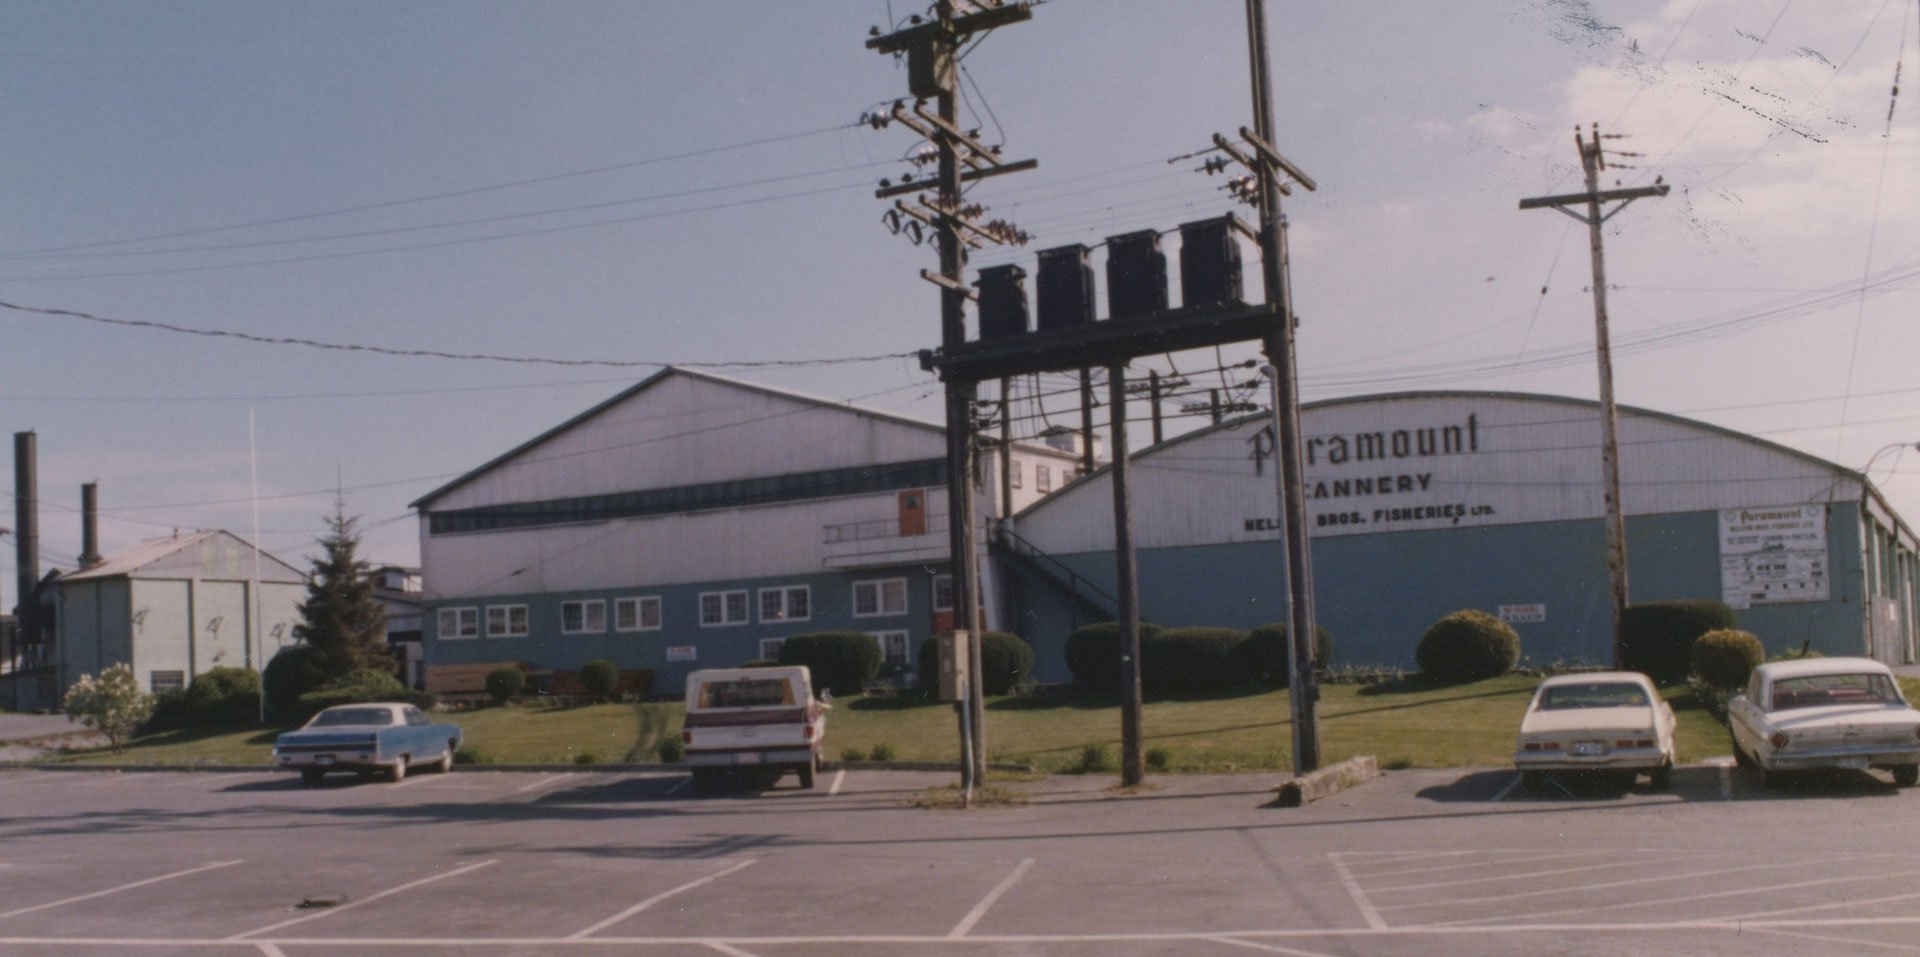 "Paramount cannery buildings as seen across the company parking lot. The words ""Paramount Cannery, Nelson Bros. Fisheries Ltd."" are painted on the side of the building."